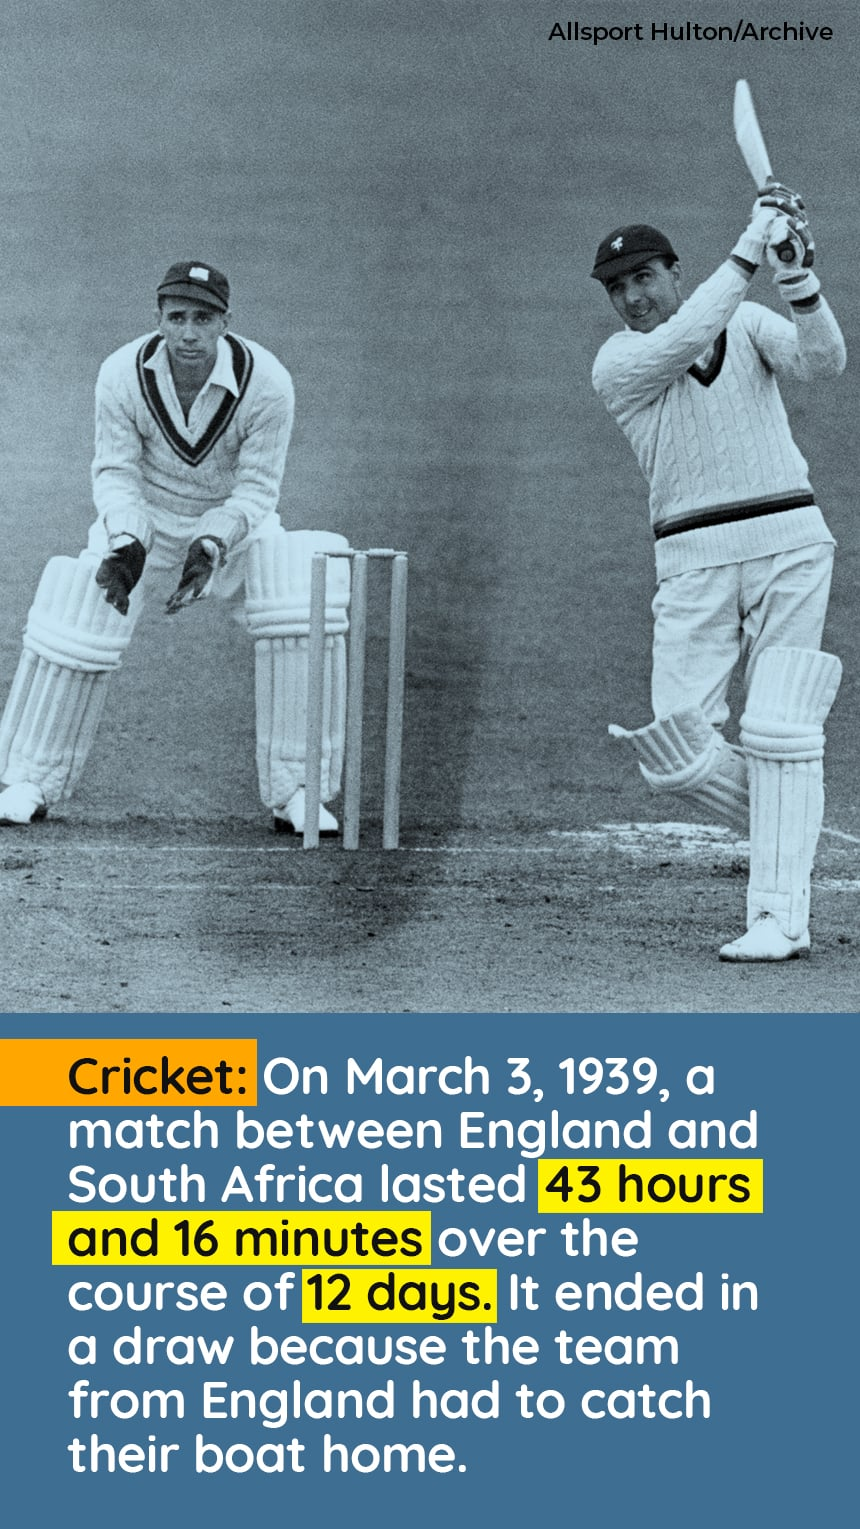 Cricket: On March 3, 1939, a  match between England and South Africa lasted 43 hours and 16 minutes over the course of 12 days. It ended in a draw because the team from England had to catch their boat home.